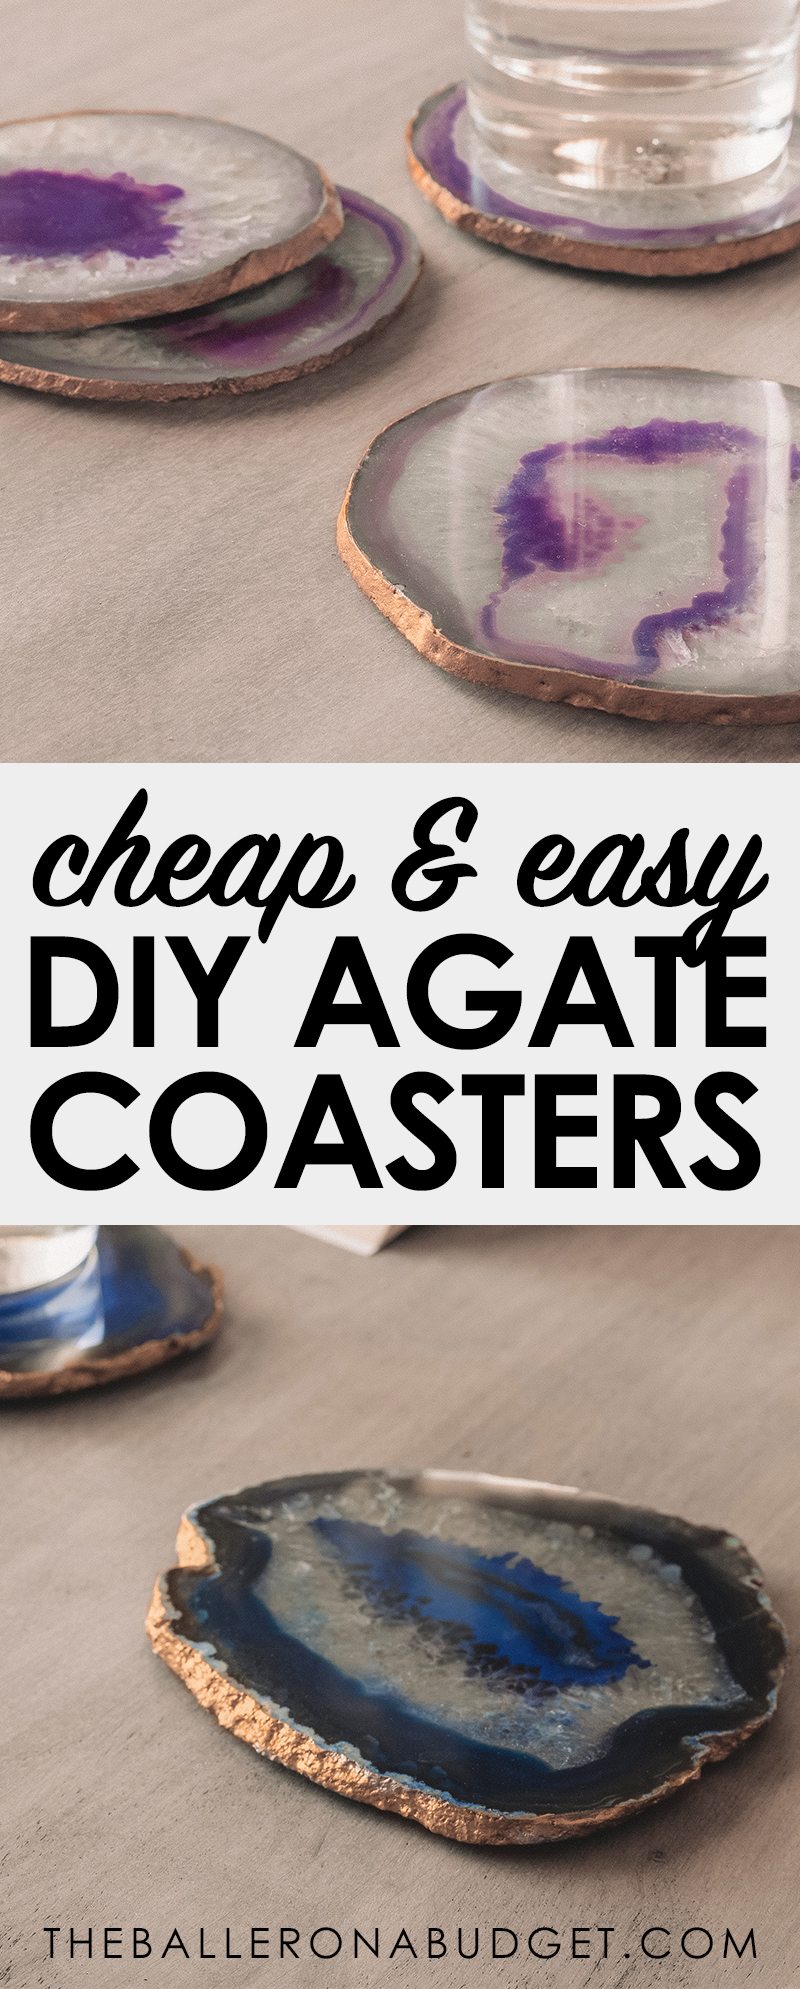 Pinterest graphic of cheap and easy DIY agate coasters craft project